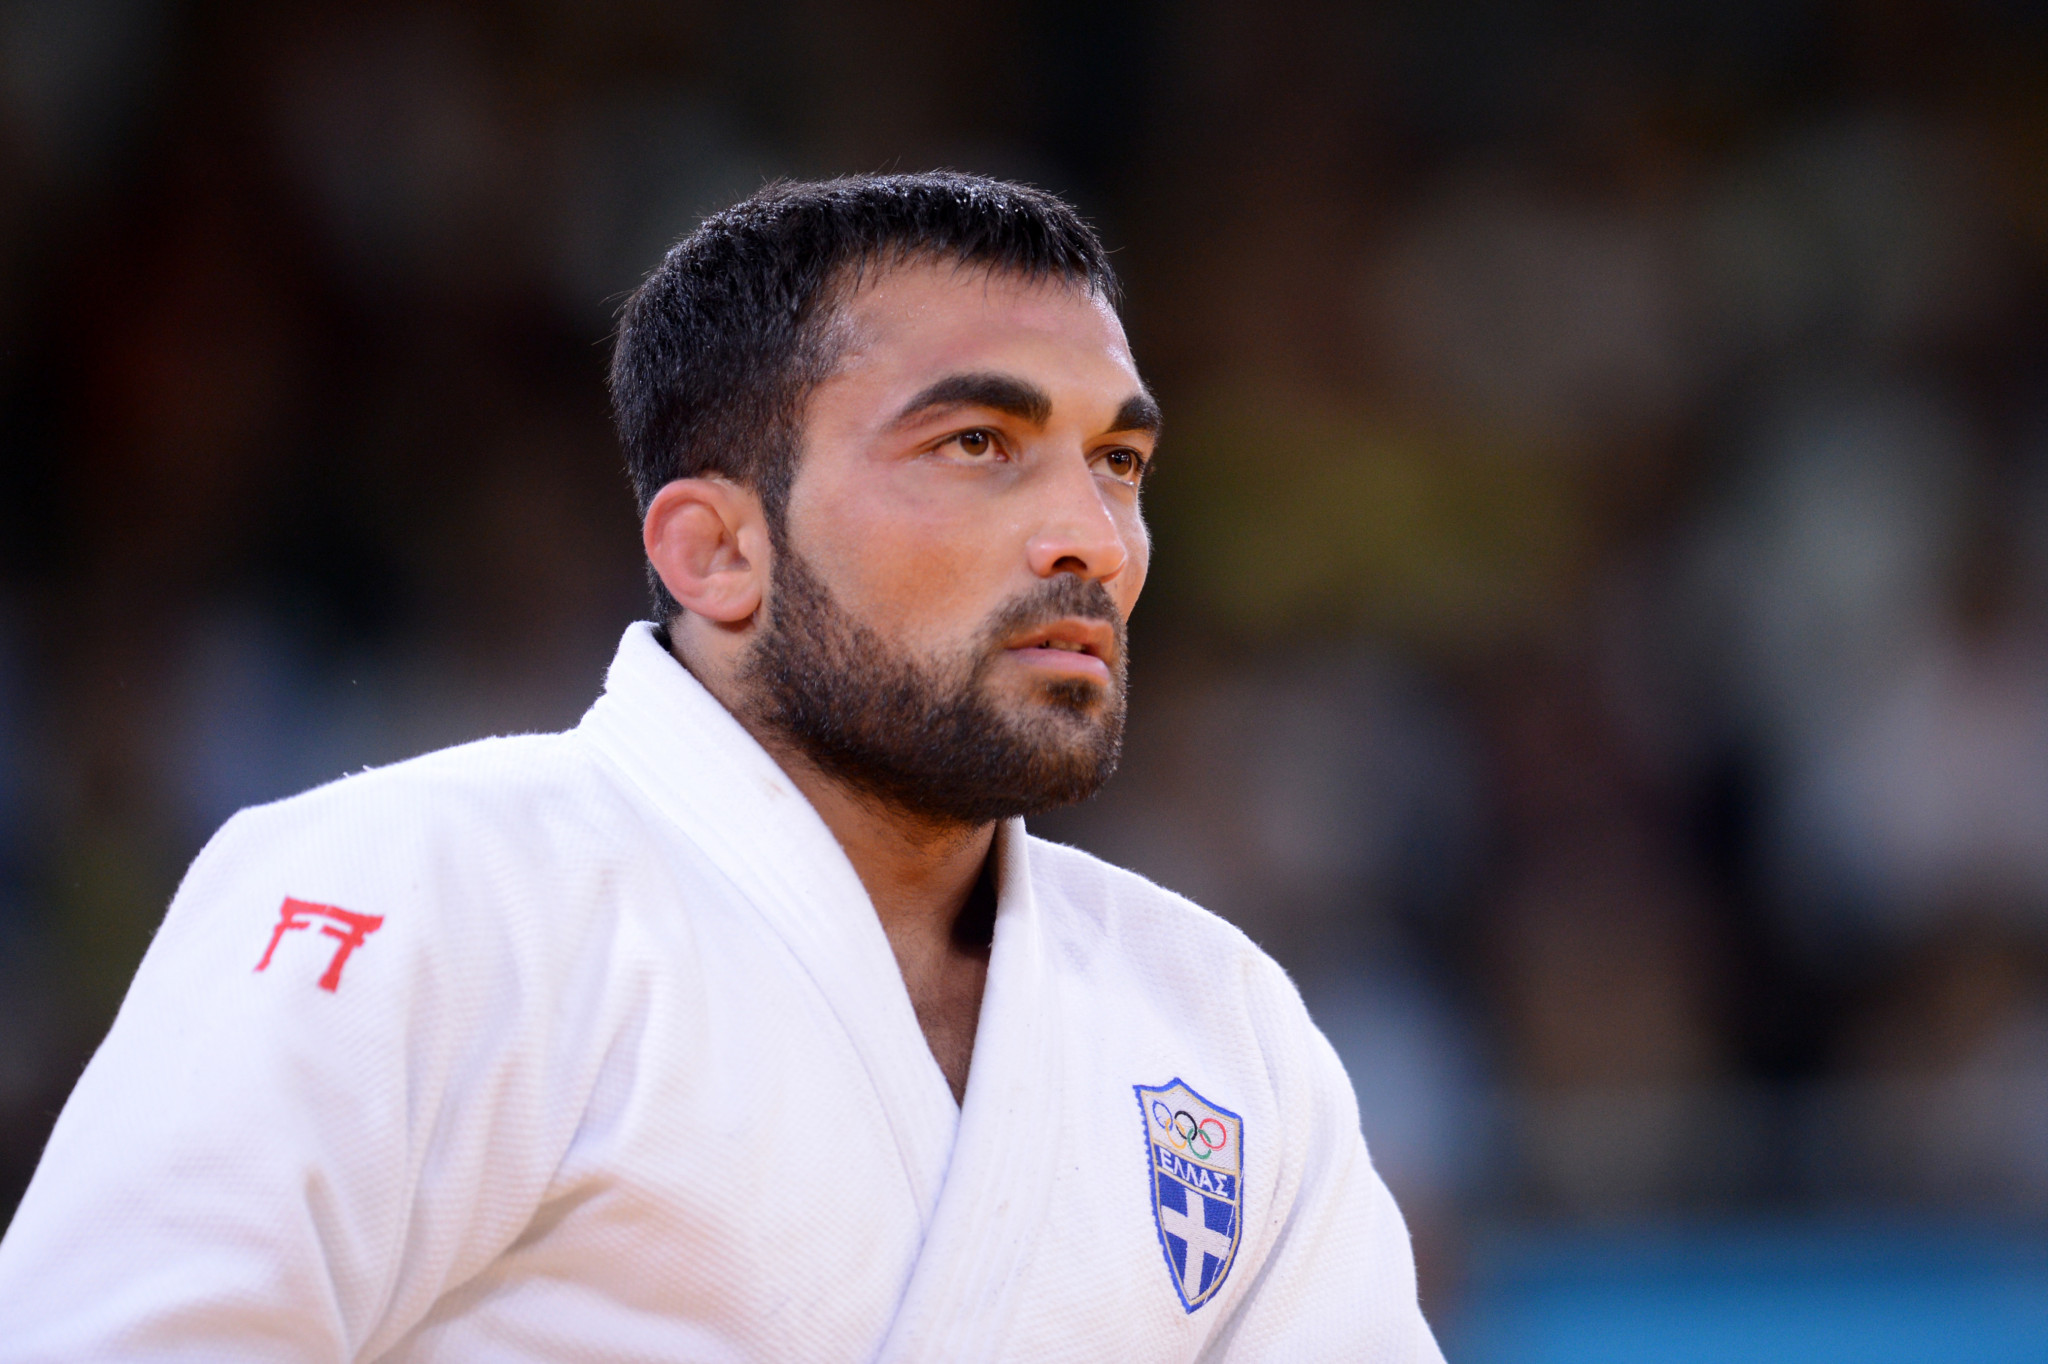 Ilias Iliadis has filmed a series of exercises and challenges which can be viewed on Judo Fit ©Getty Images